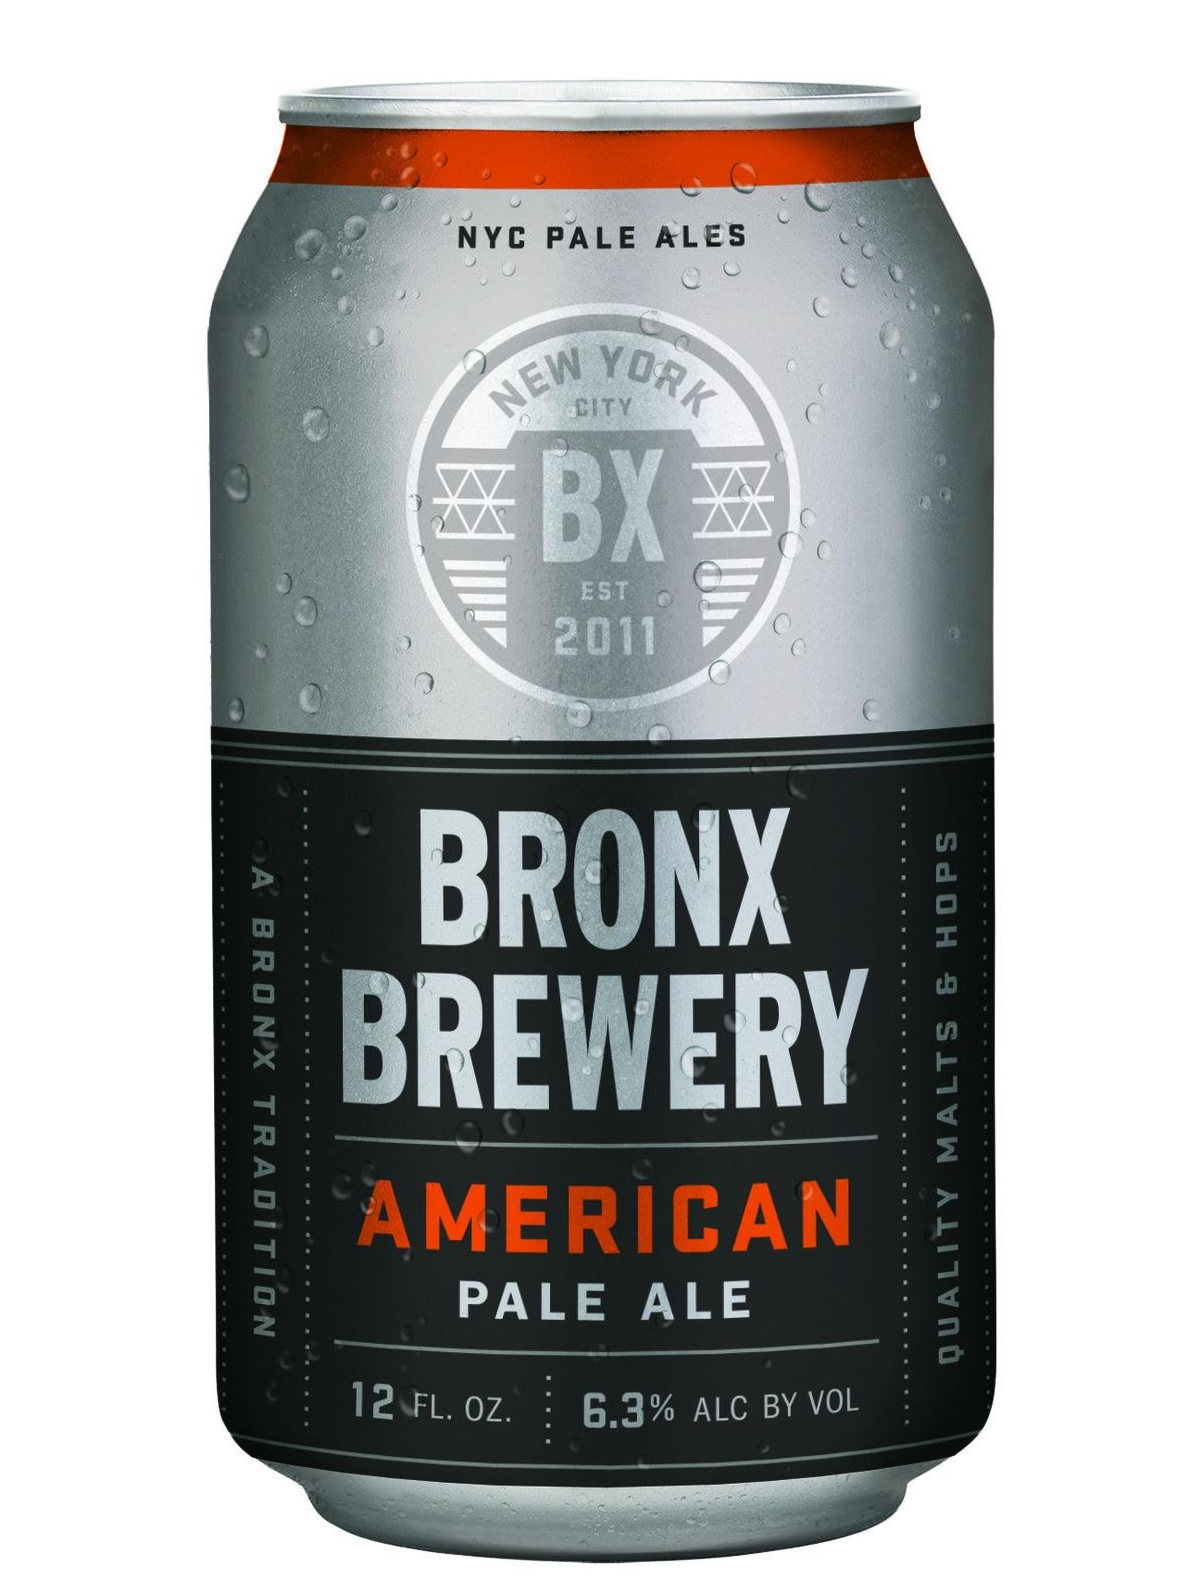 Bronx Brewery's American Pale Ale